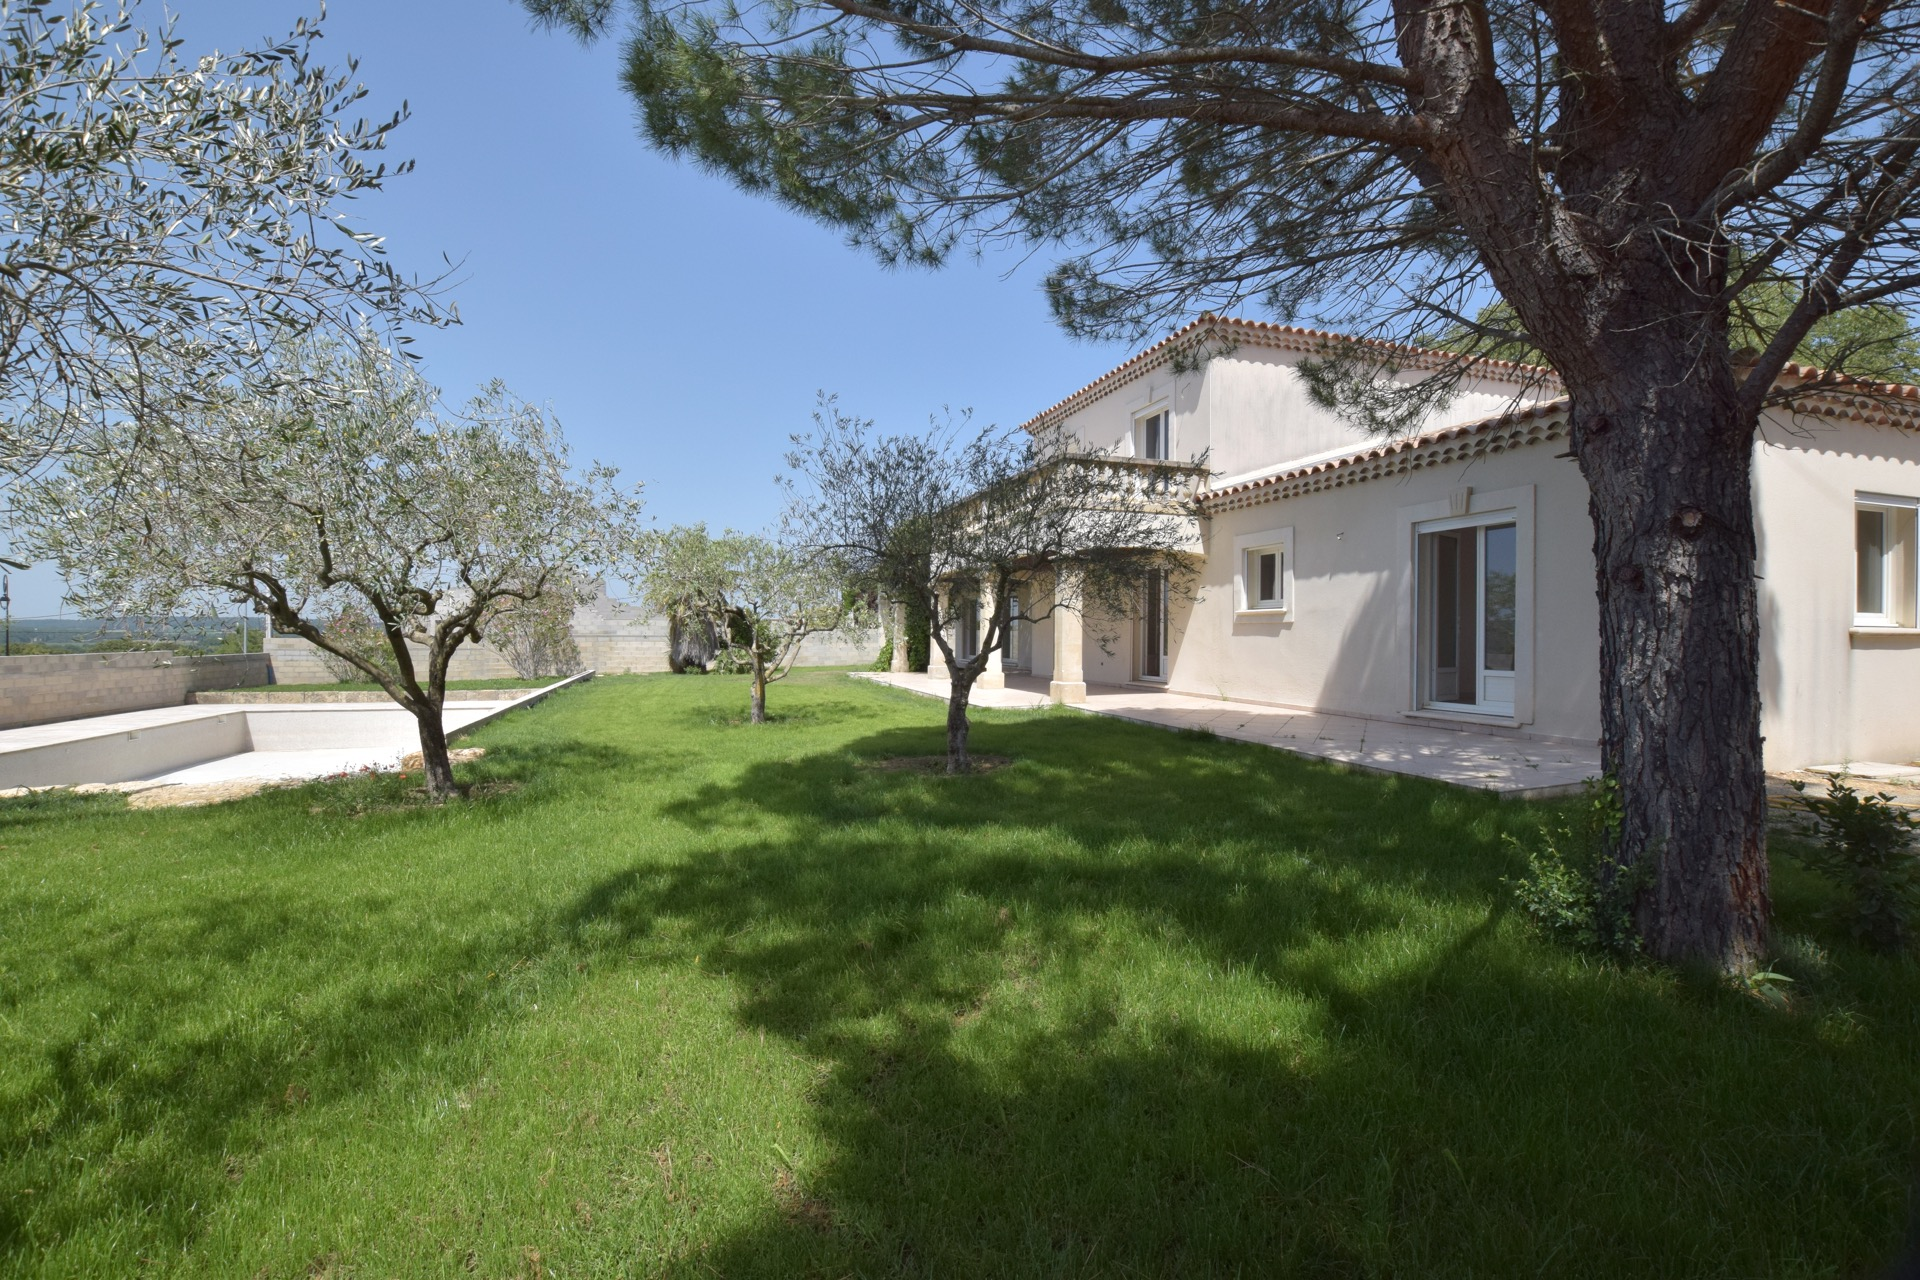 1690 : Uzès, villa 225m2 SH, quality fittings on 2000m2  with swimming pool 15 X 7